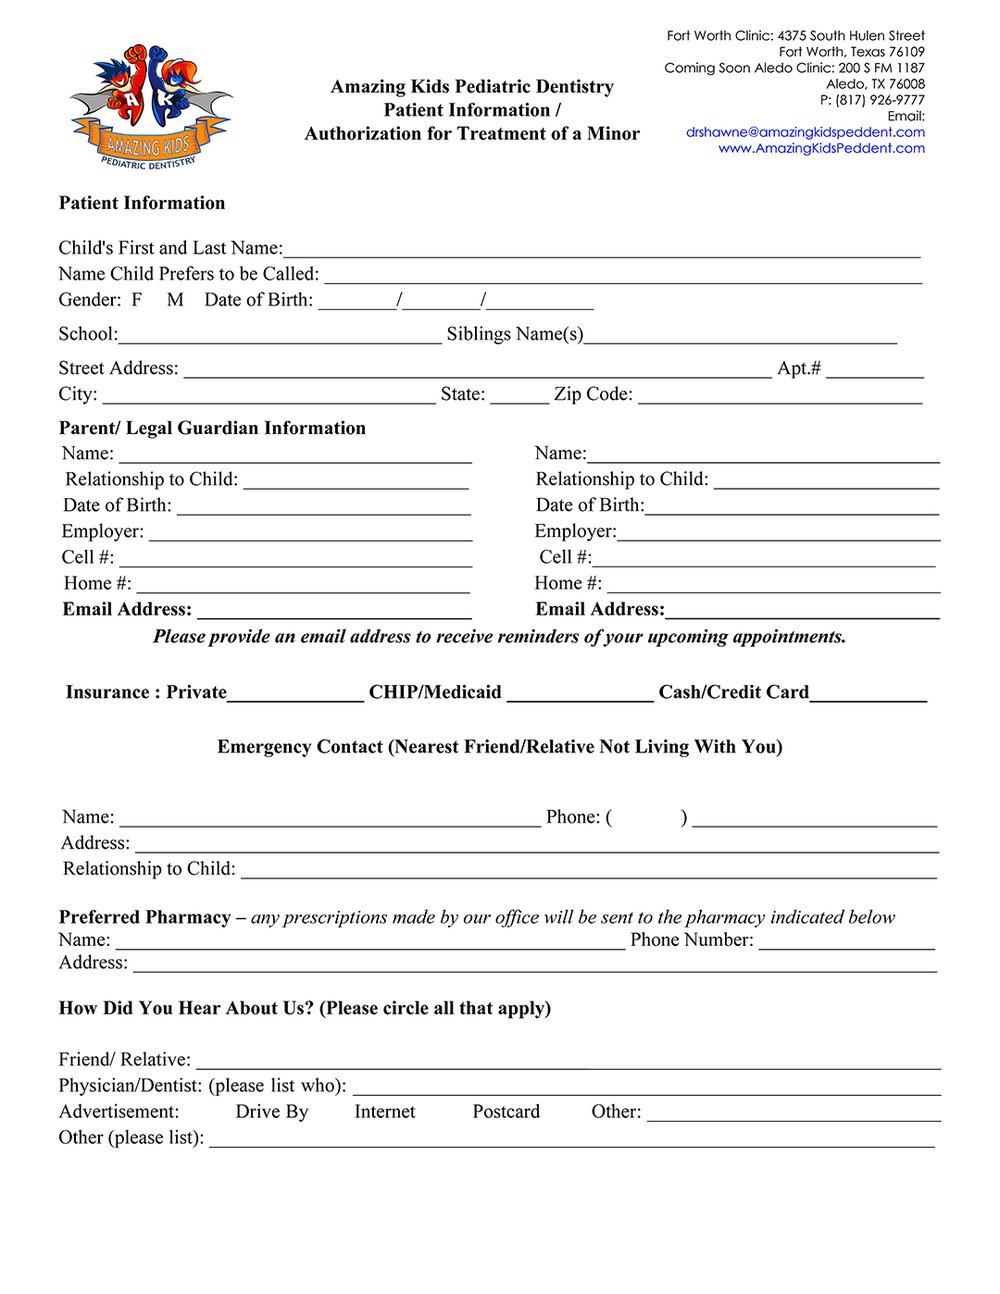 Amazing Kids Pediatric Dentistry Patient Form, download and fill on or before appointment.